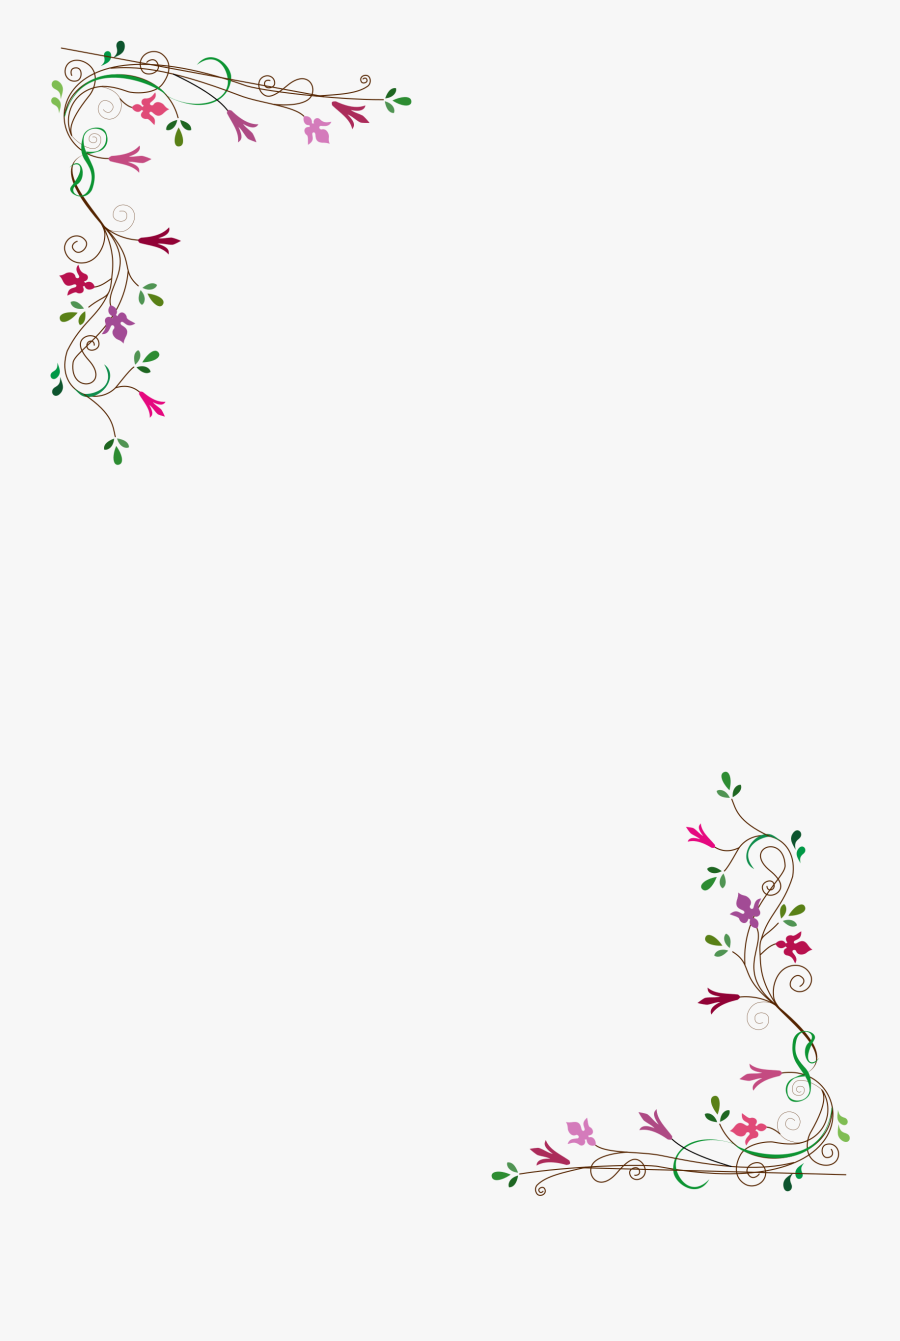 Vintage Flower Frame Vector Png - Vector Border Flower Frame, Transparent Clipart